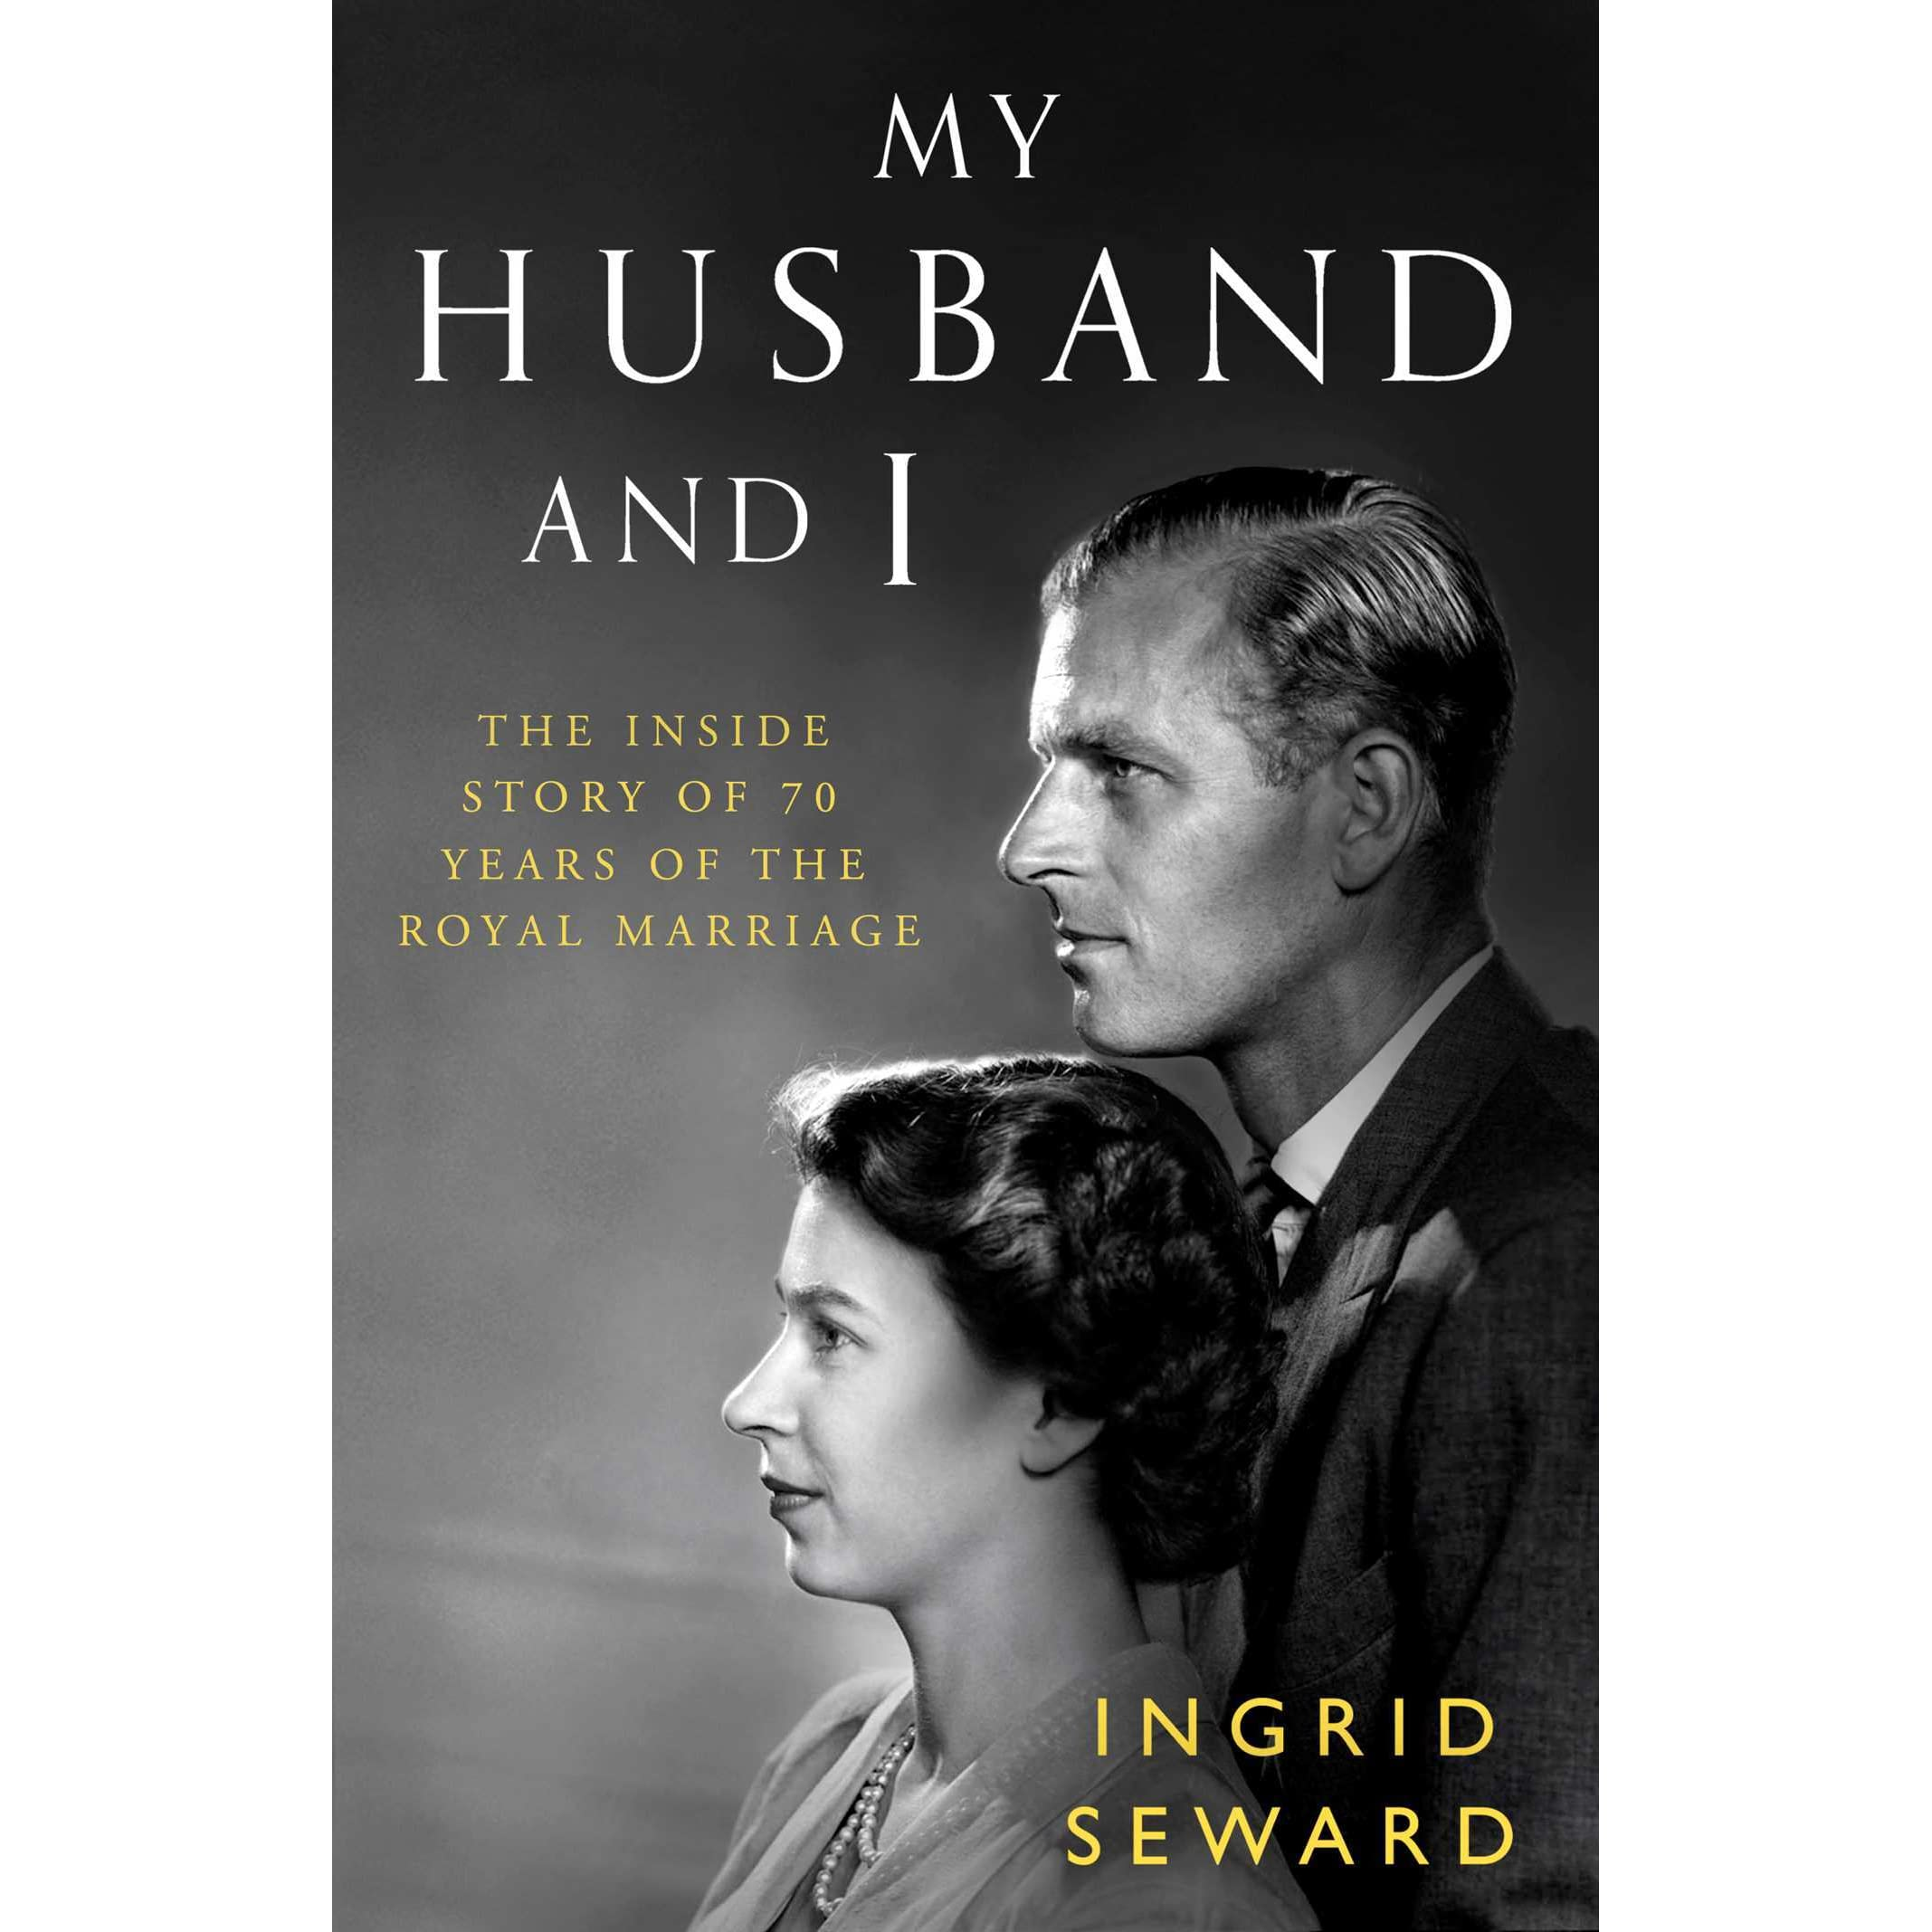 My Husband and I: The Inside Story of 70 Years of the Royal